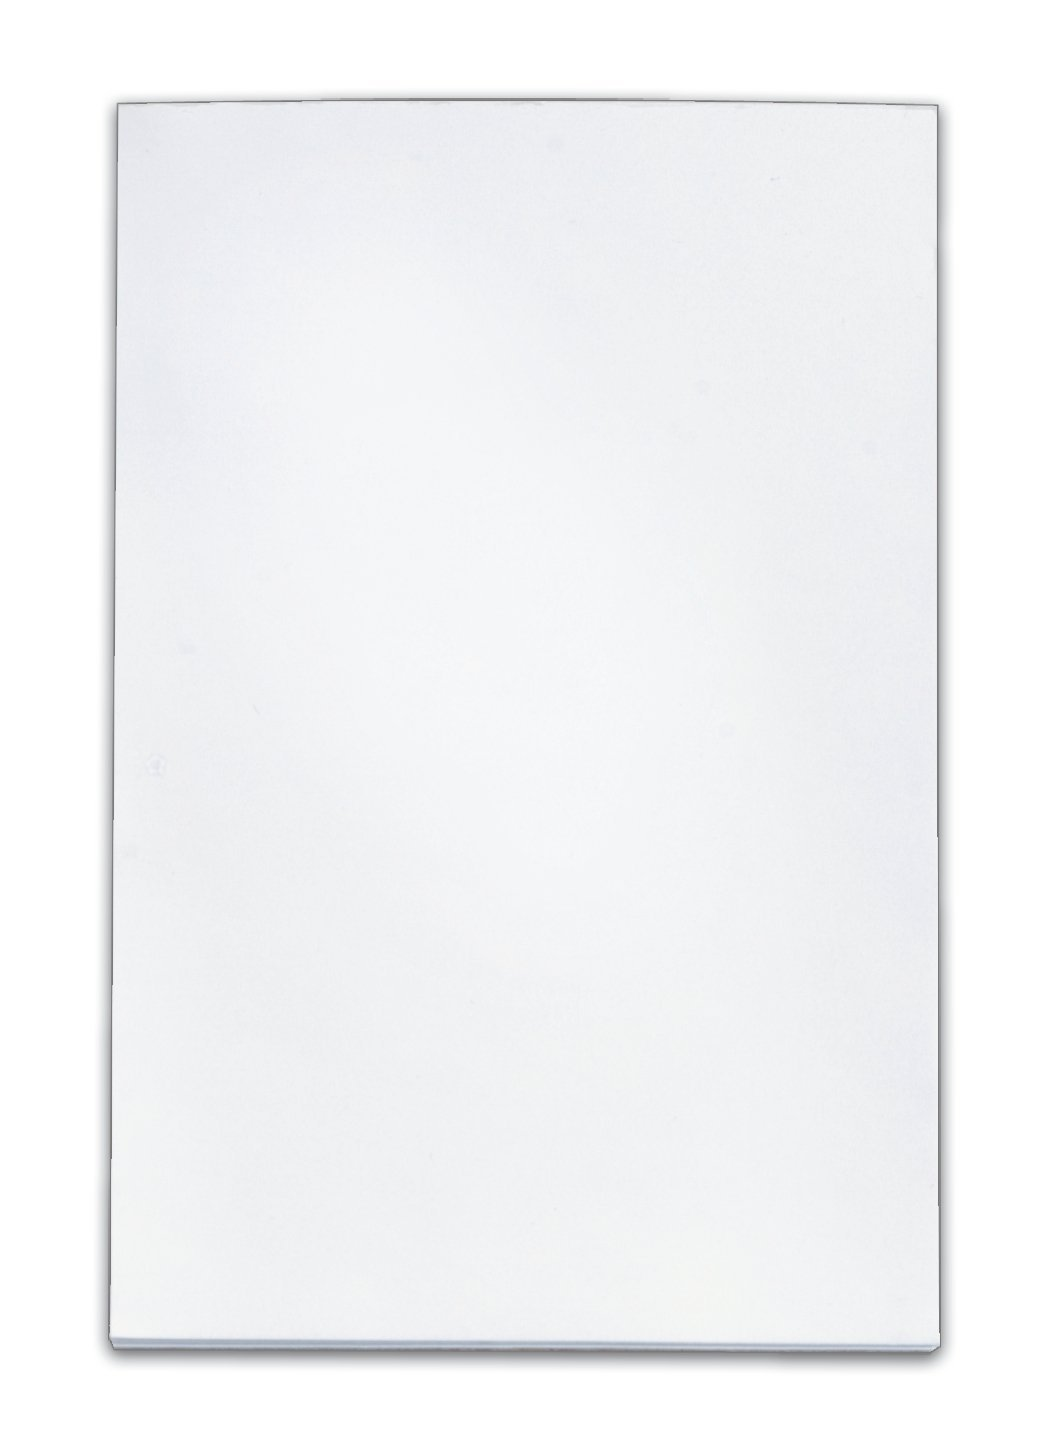 TOPS Memo Pads, 4 x 6 Inches, White, 100 Sheets per Pad, 112 Pads per Carton (7831)